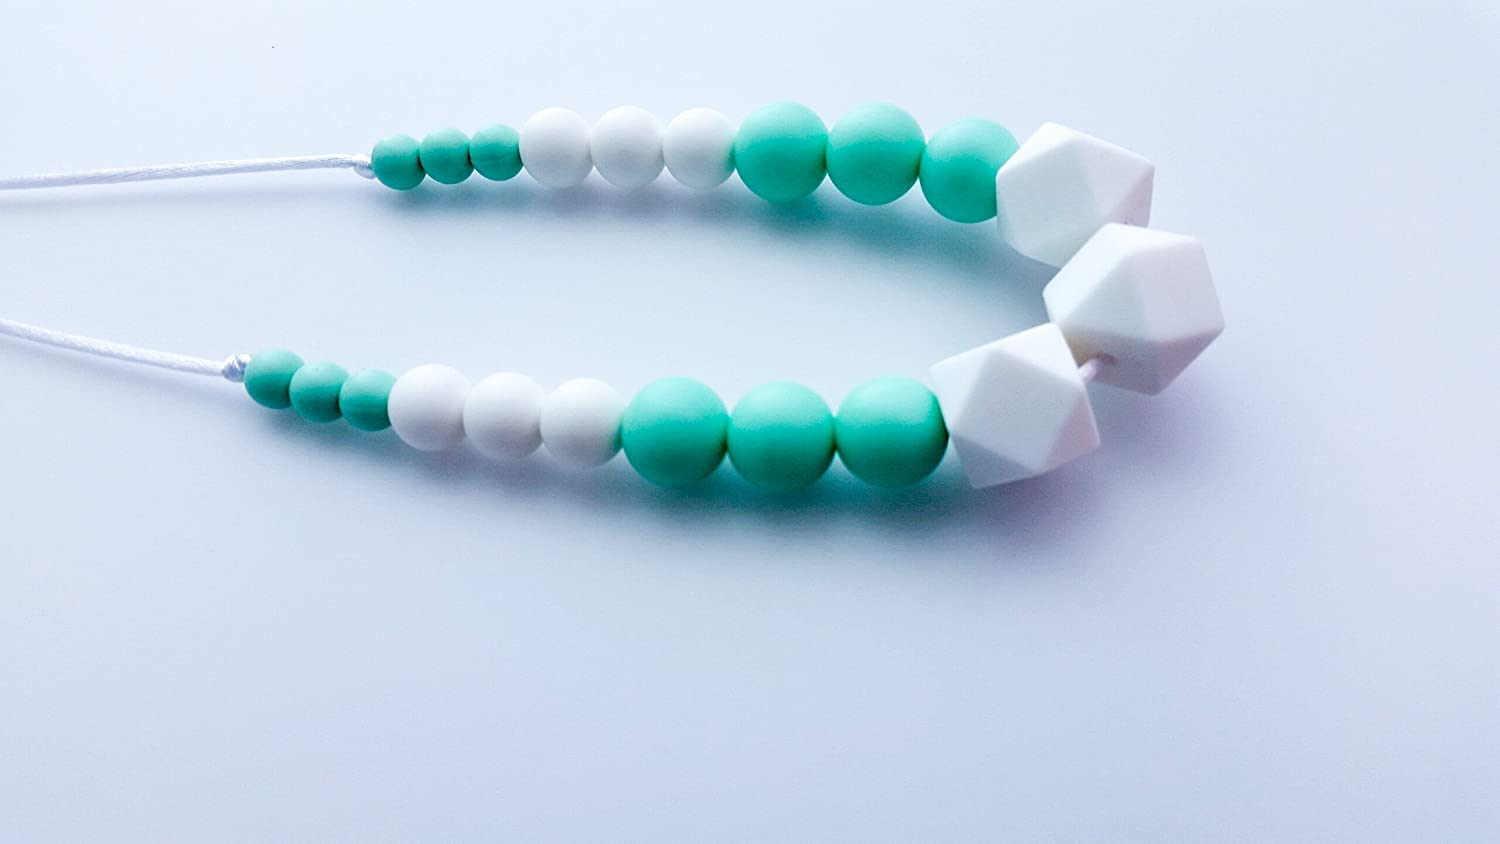 Modern Silicone Teething and Nursing Necklace in Mint and White